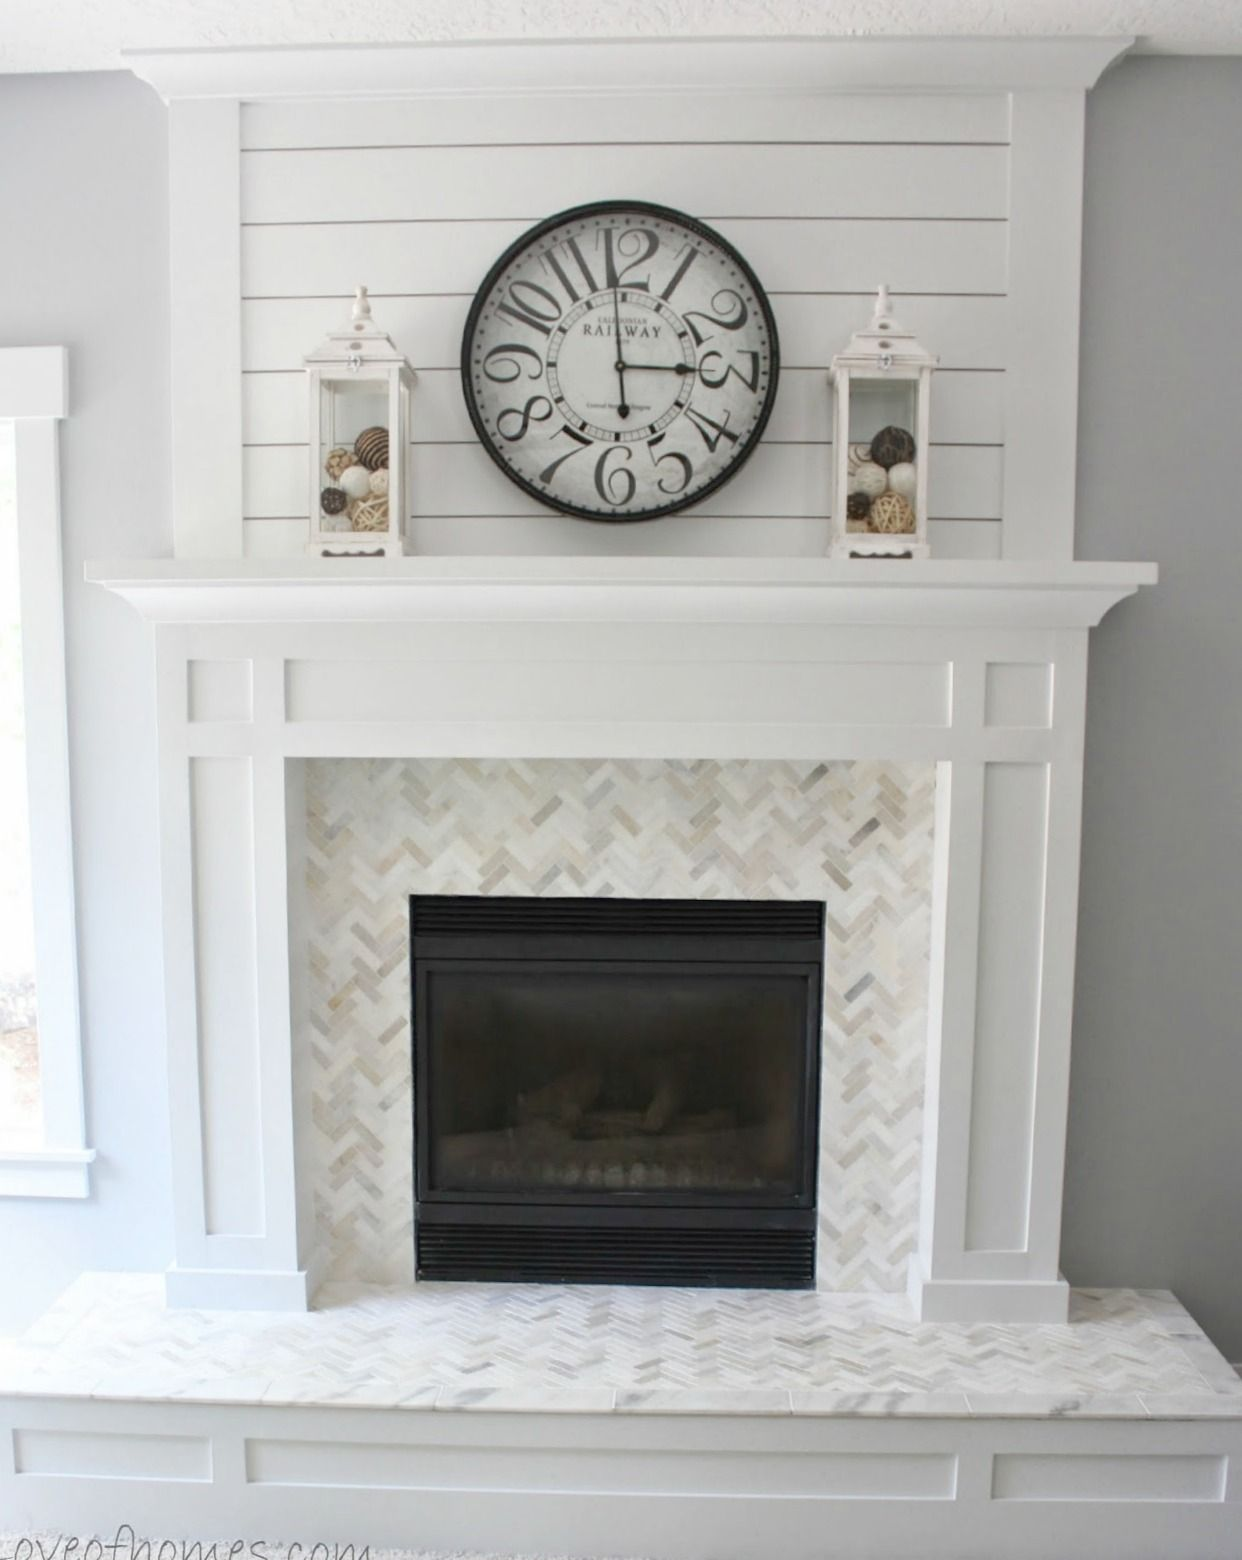 Tile Around Fireplace Ideas Summer White Diy Projects Page 3 Of 9 Beach House Farmhouse